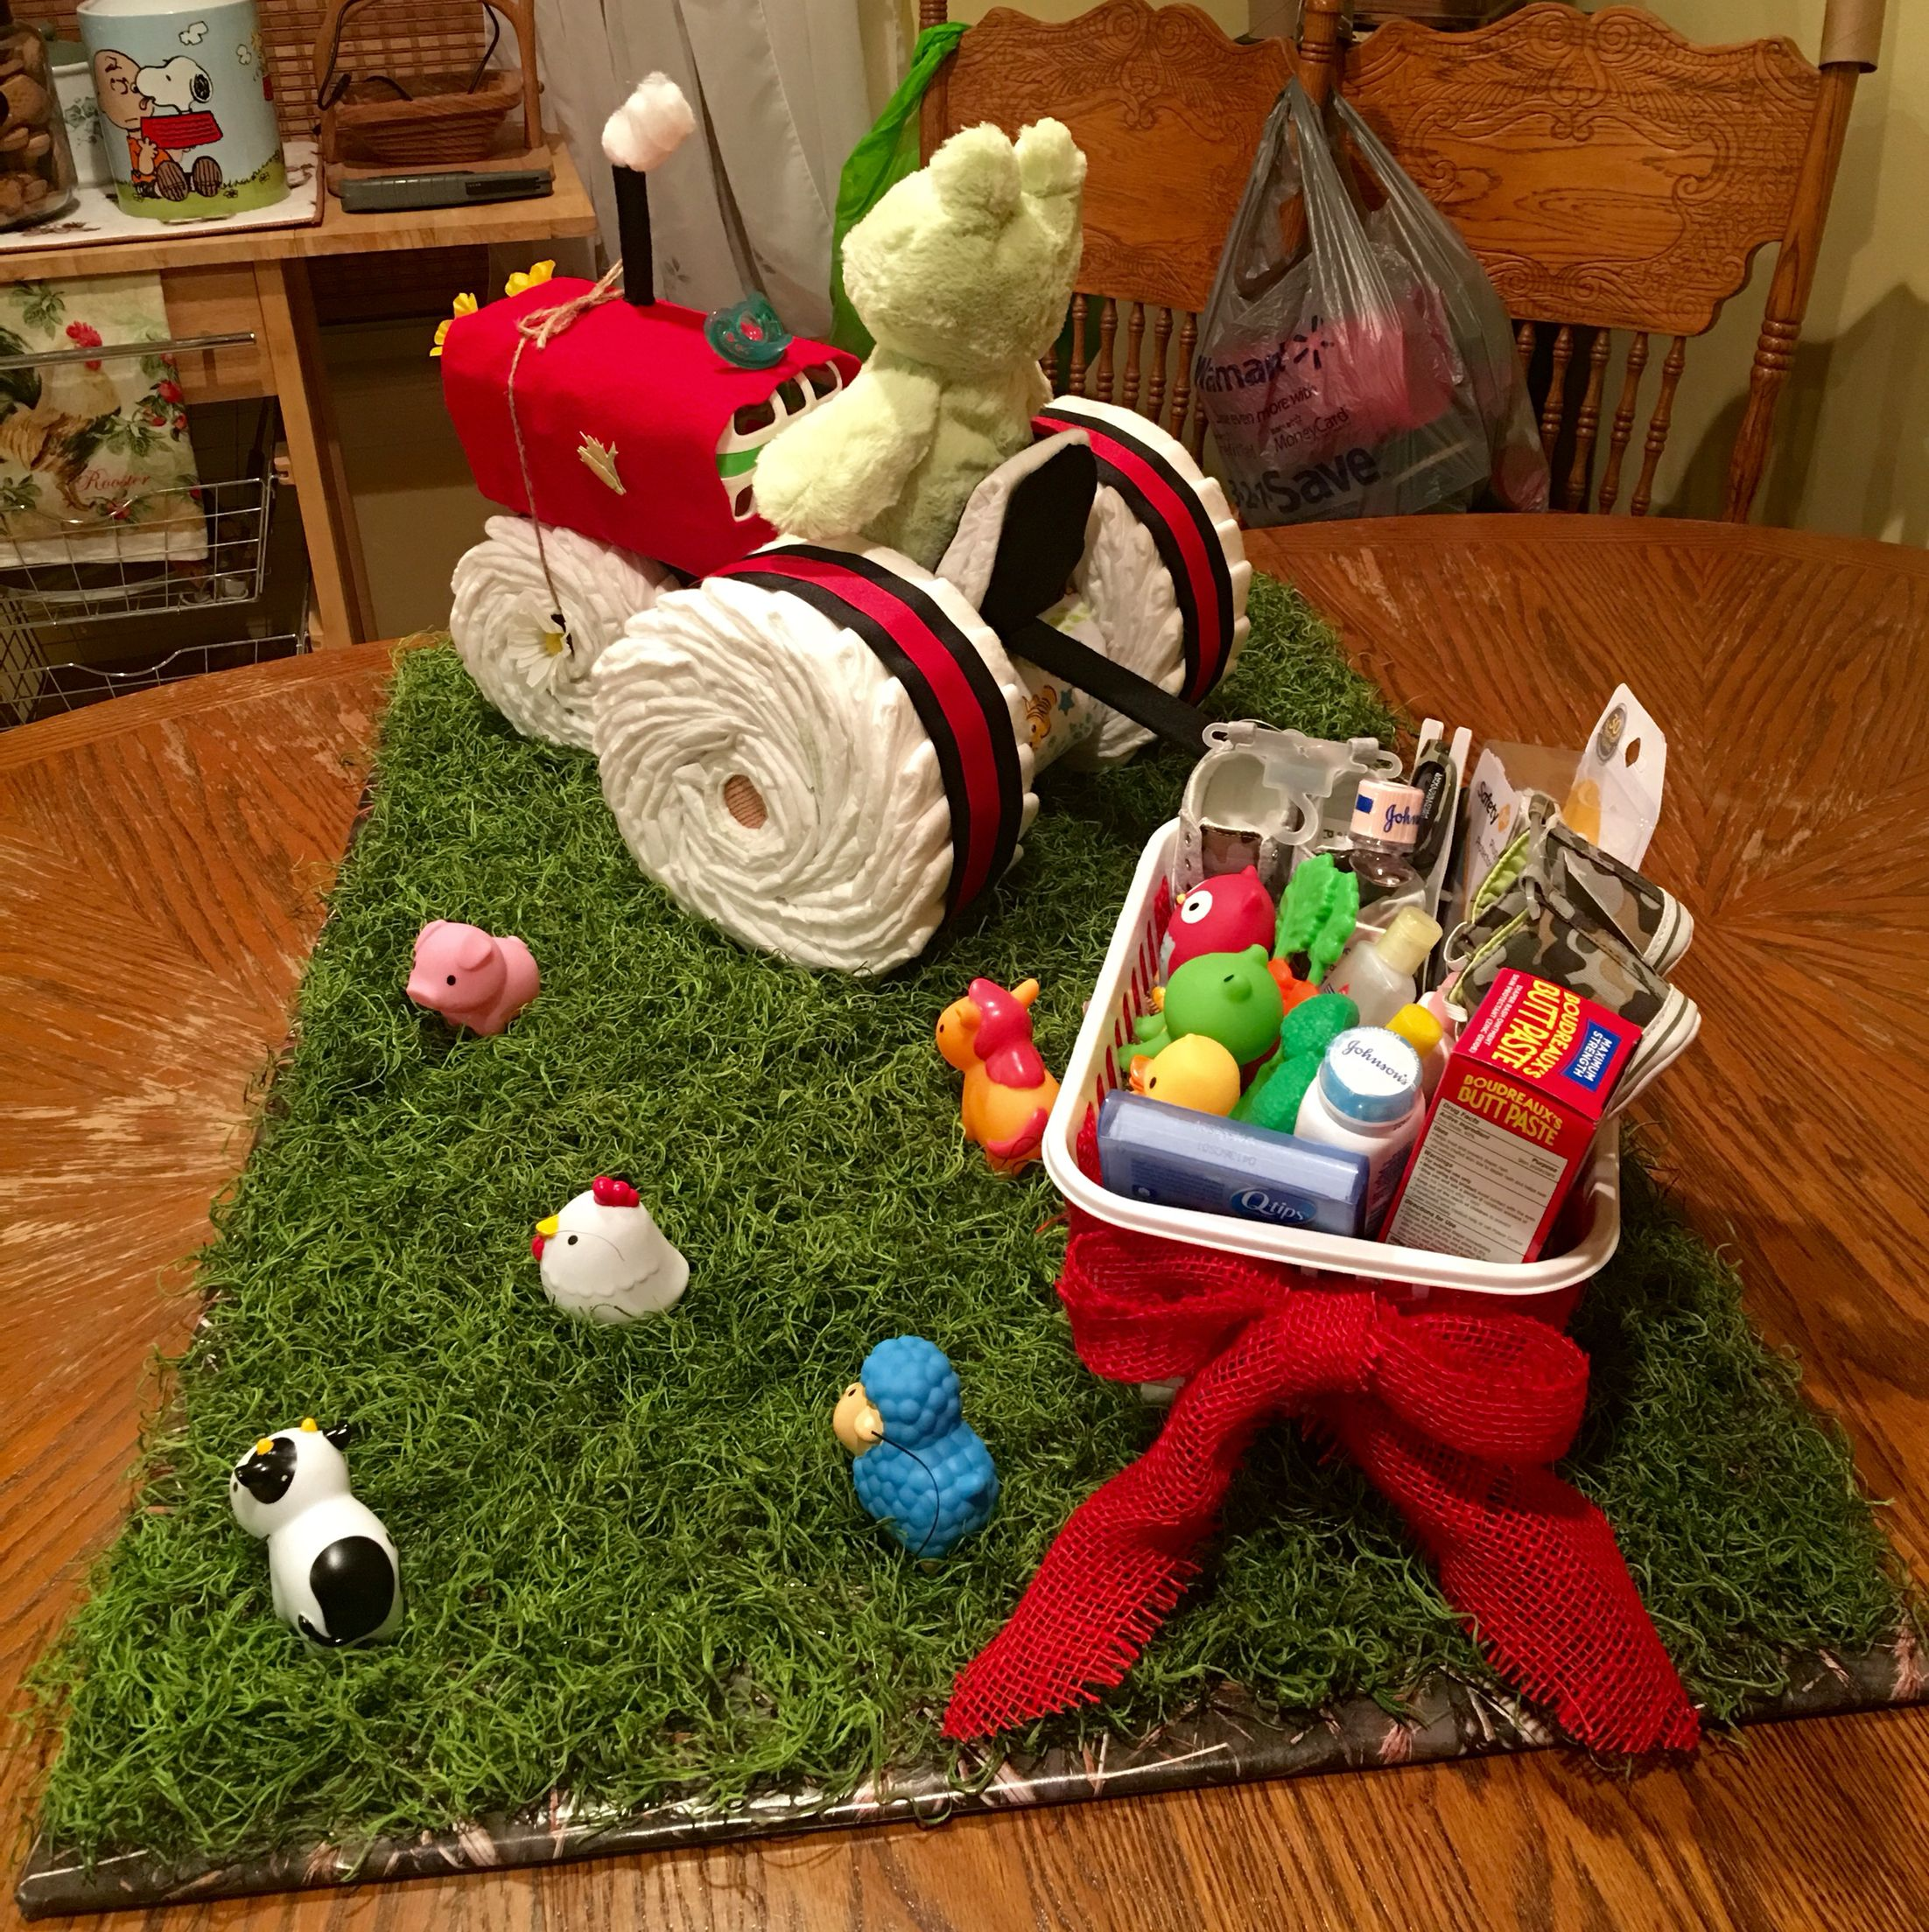 Horse in a barn diaper cake diaper cakes are boring but a tractor diaper cake for farm themed baby shower angle 1 of 4 negle Choice Image